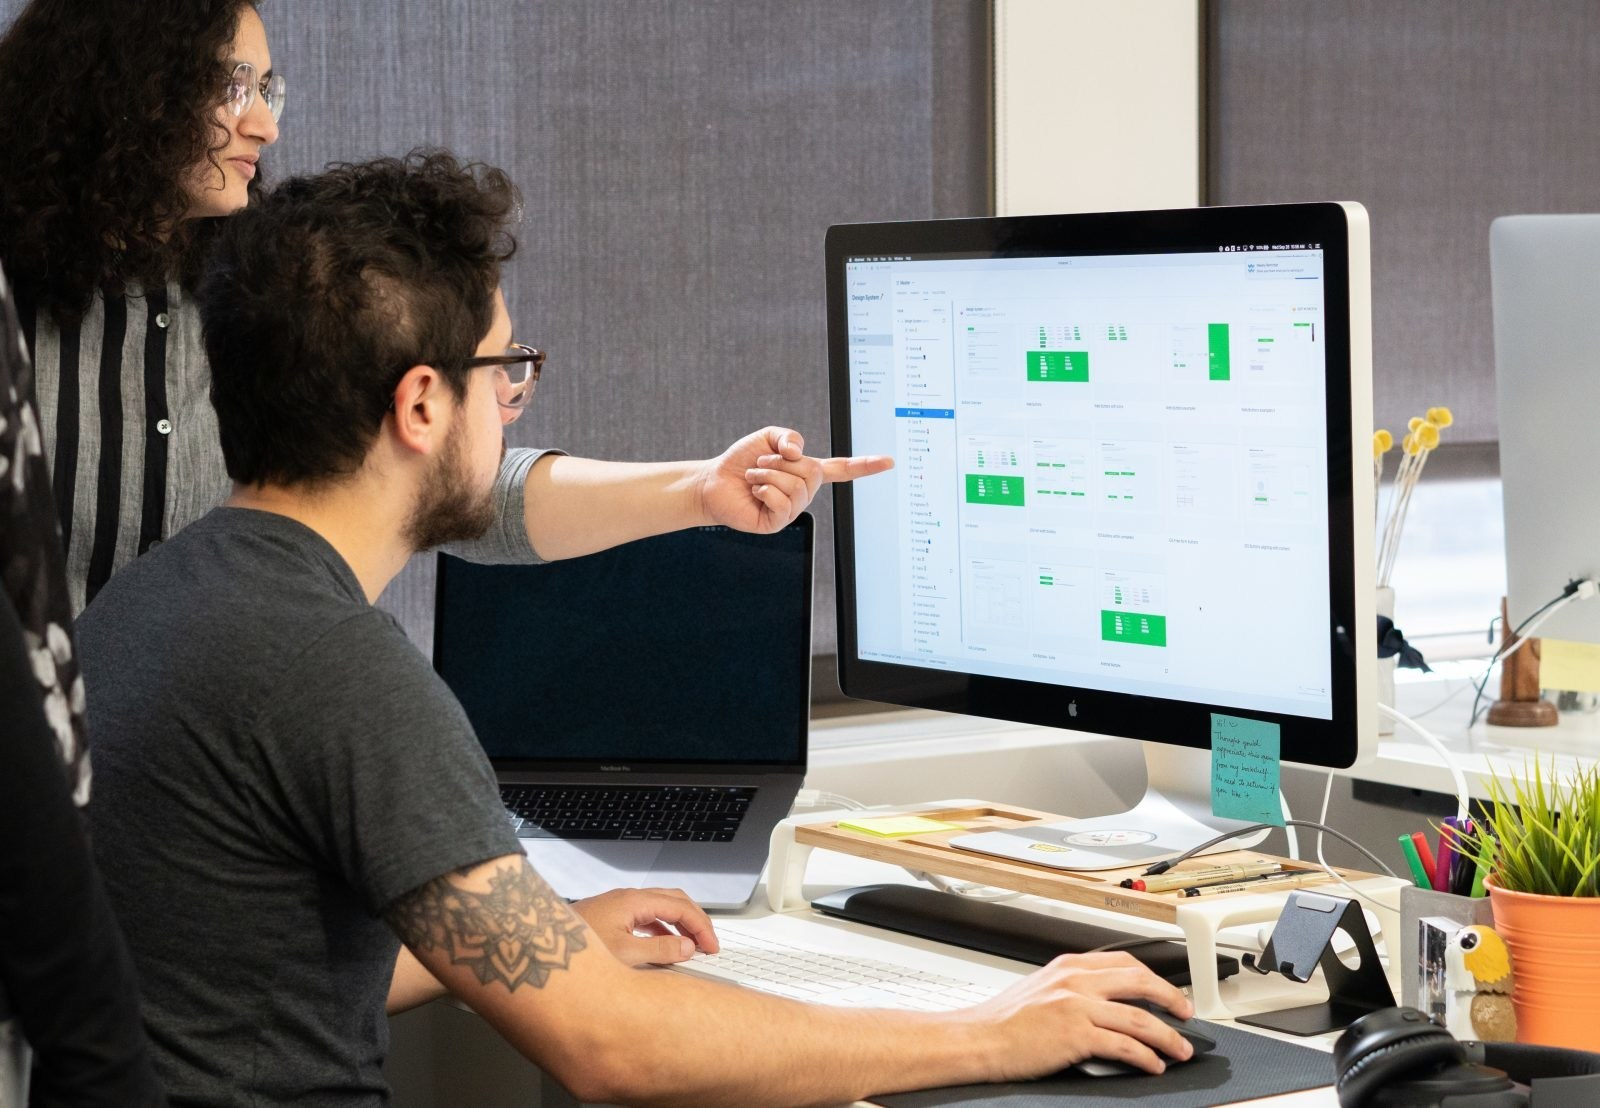 Since launching in July 2017, more than 5,000 design teams have adopted Abstract, including teams from Shopify, Cisco, Intuit, Spotify, OpenTable, Salesforce, and Instacart